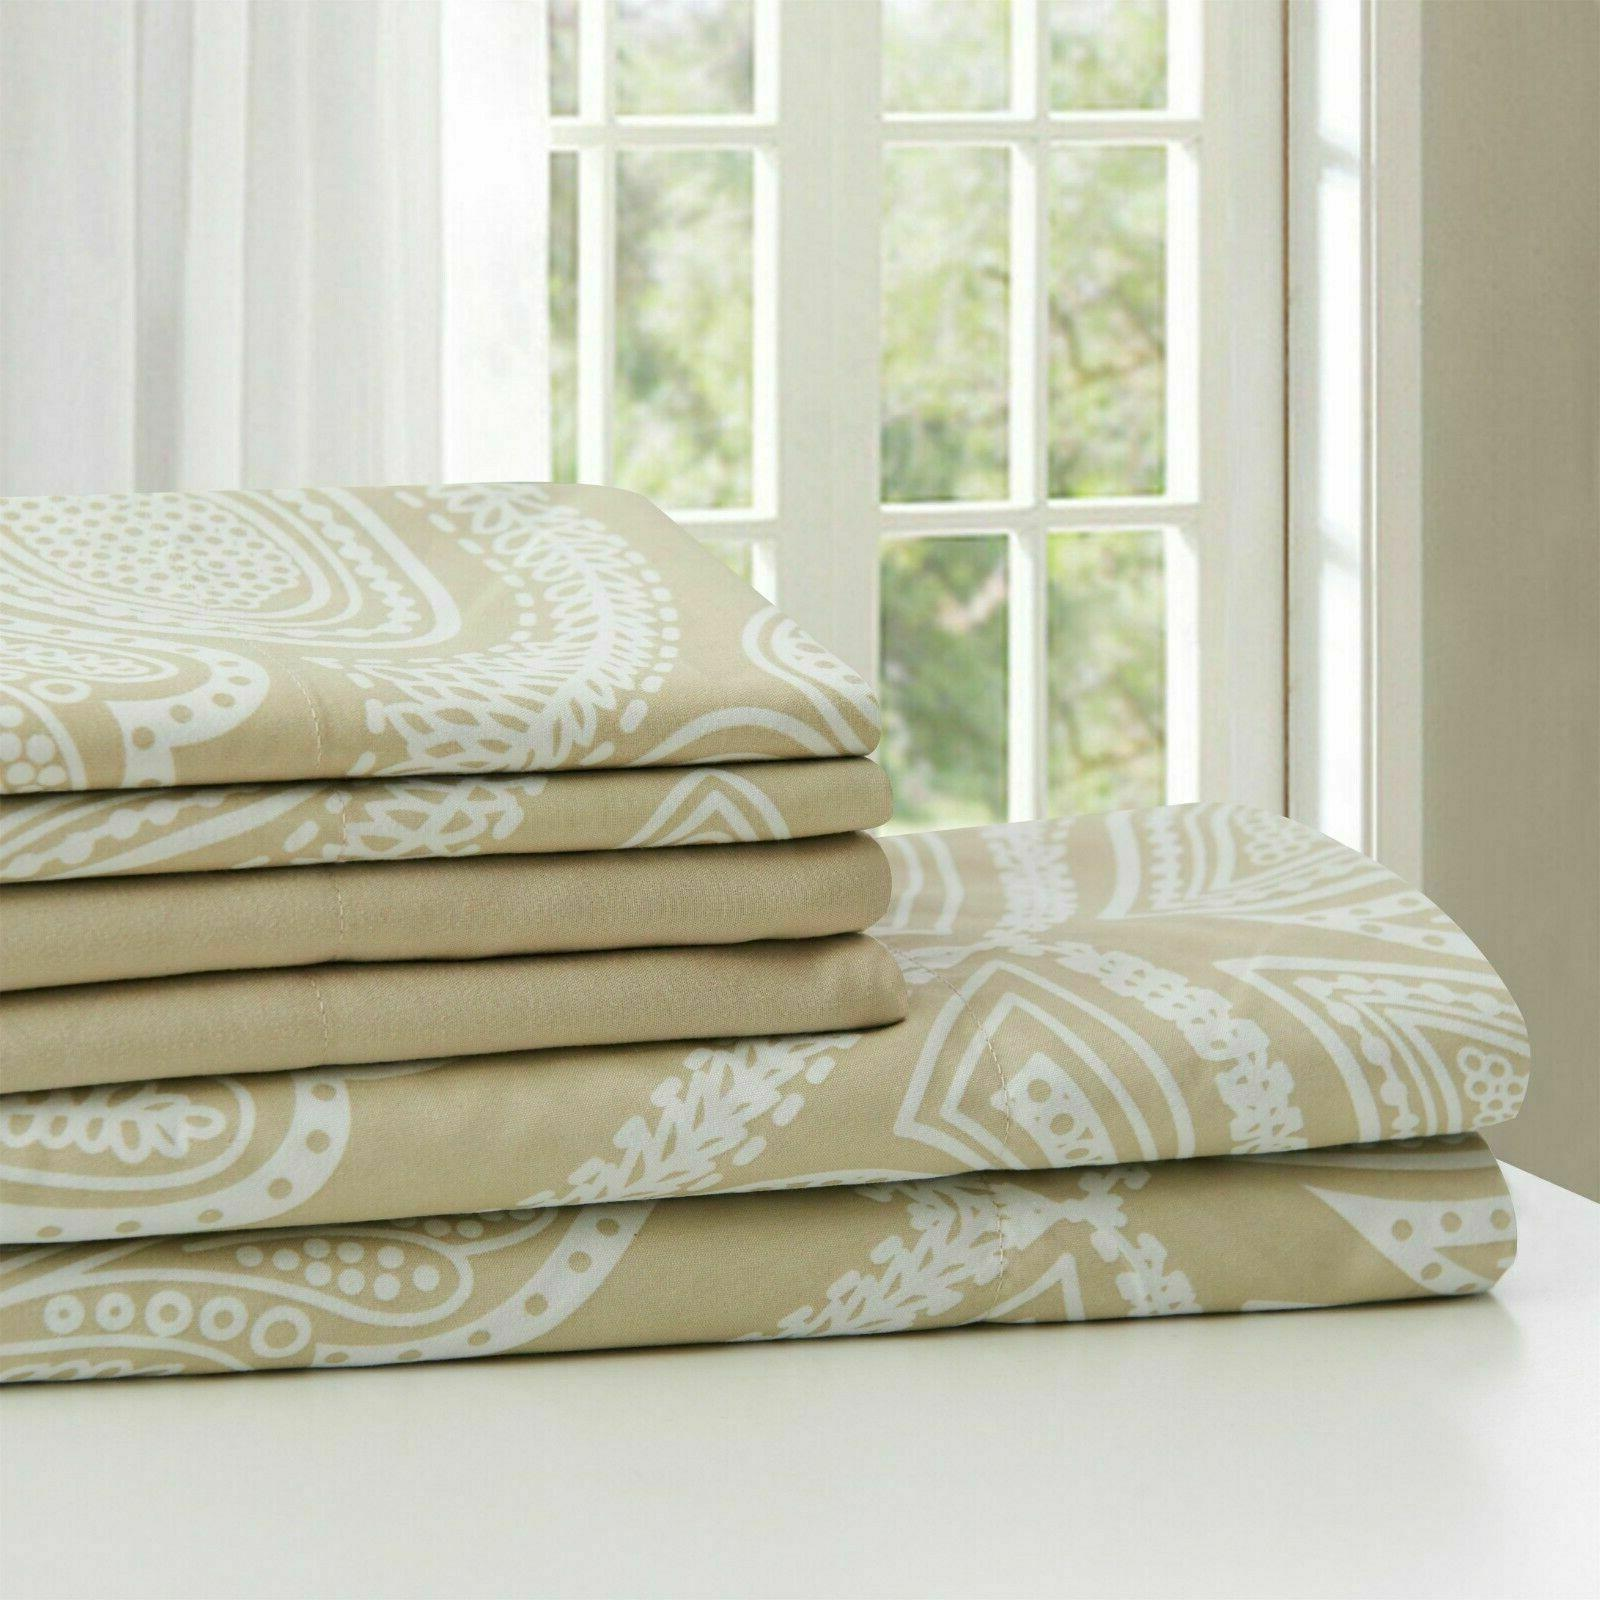 Thread Count Pocket Bed Sheet Sheets